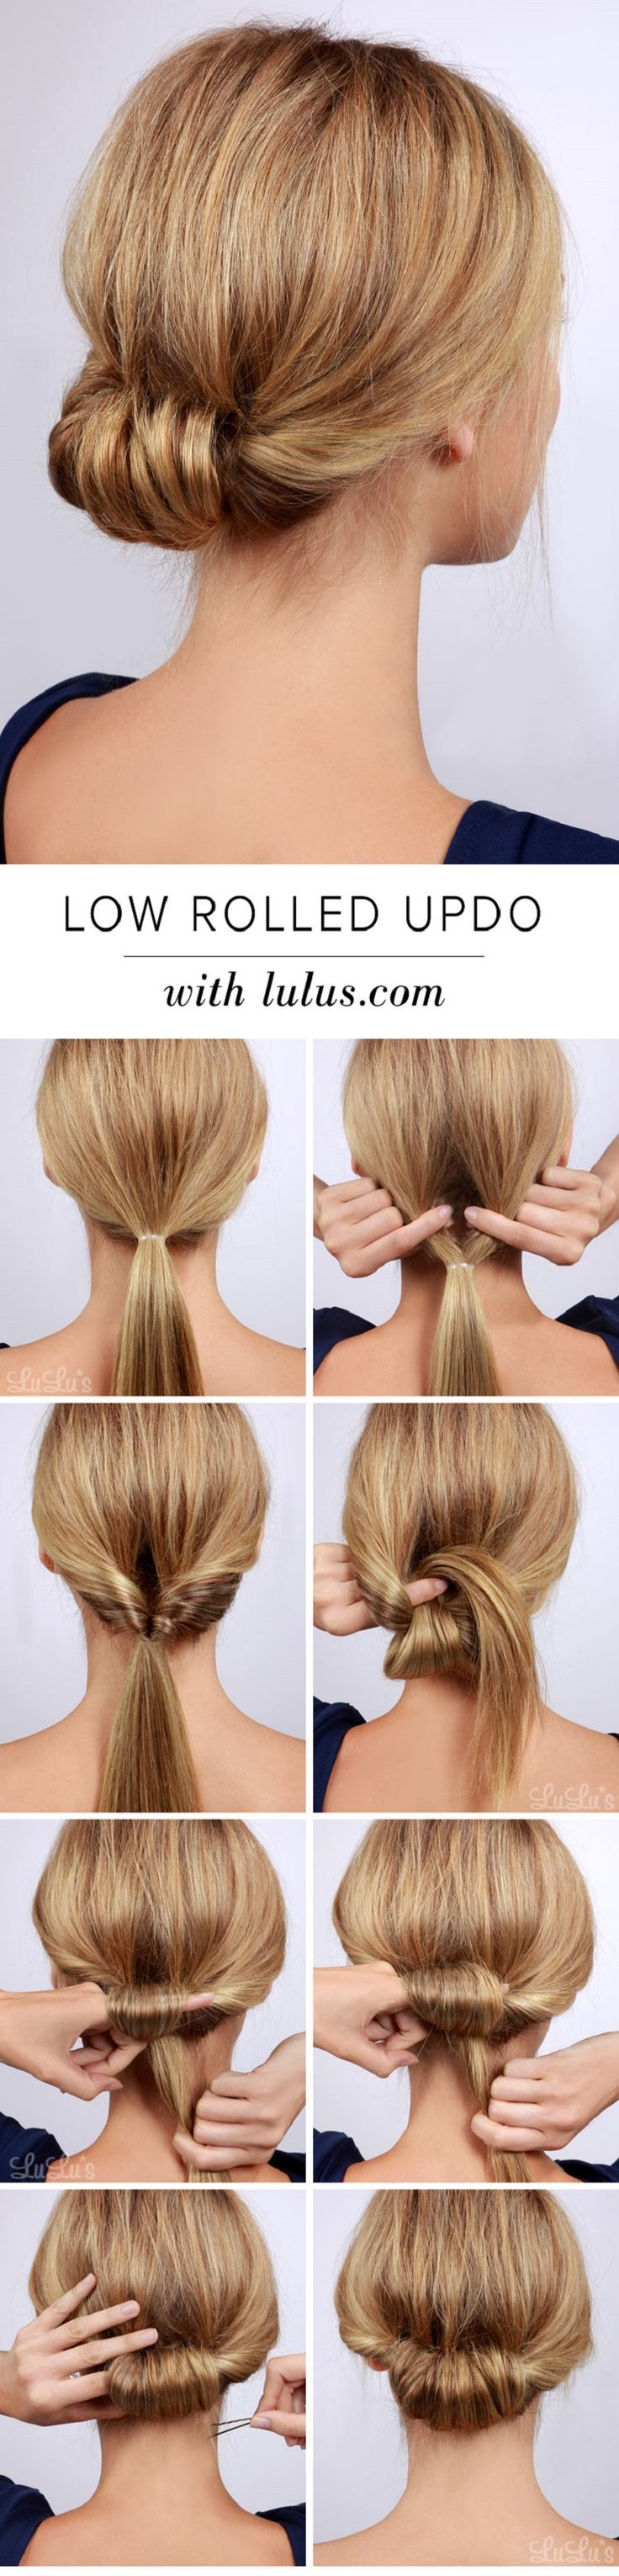 Low Rolled Updo Hair Tutorial - 15 Best Beauty Tutorials for Winter 2014-2015 | GleamItUp: Simple Updo, Easy Hair Tutorial, Hair Bun, Low Bun, Hair Updo, Easy Updo, Hair Styles Updo